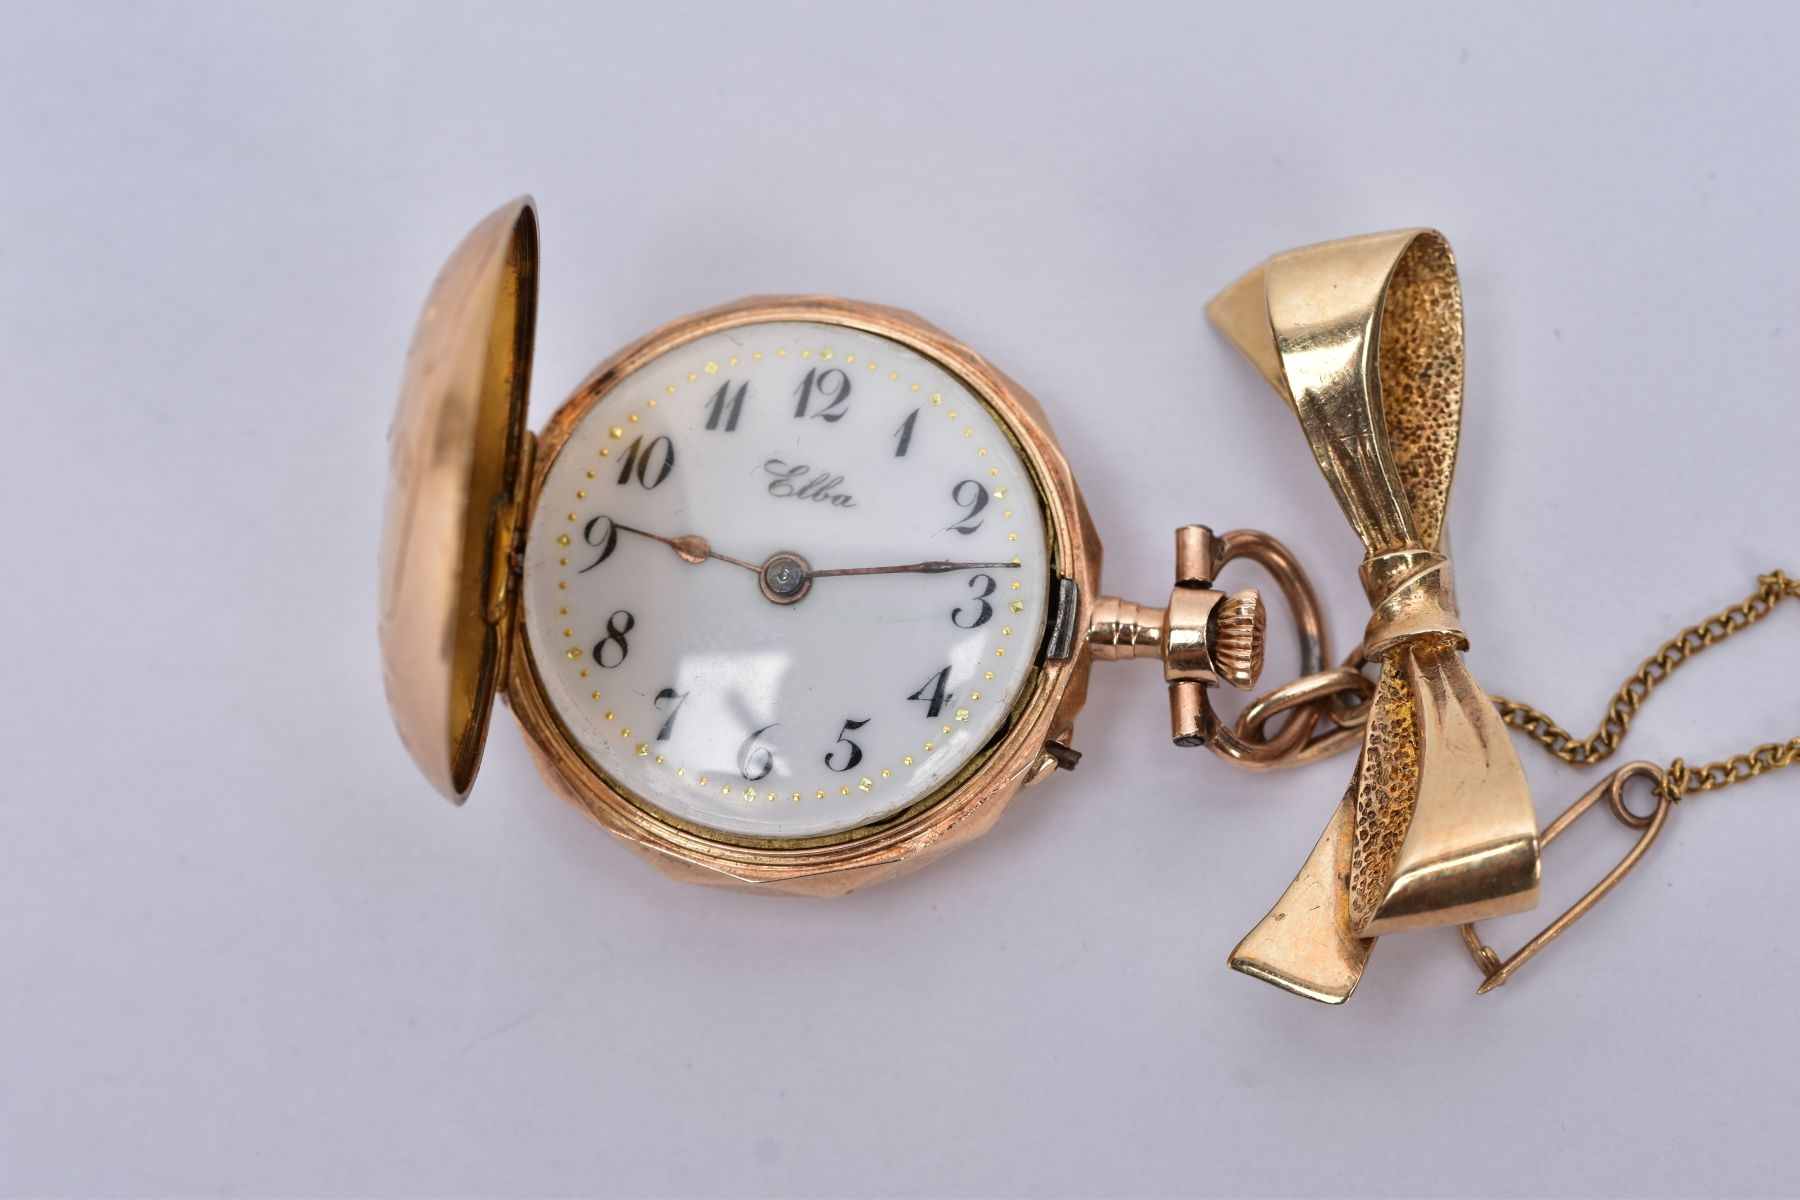 AN EARLY 20TH CENTURY GOLD AND DIAMOND LADY'S FOB WATCH, white enamel dial signed 'Elba', case - Image 3 of 5